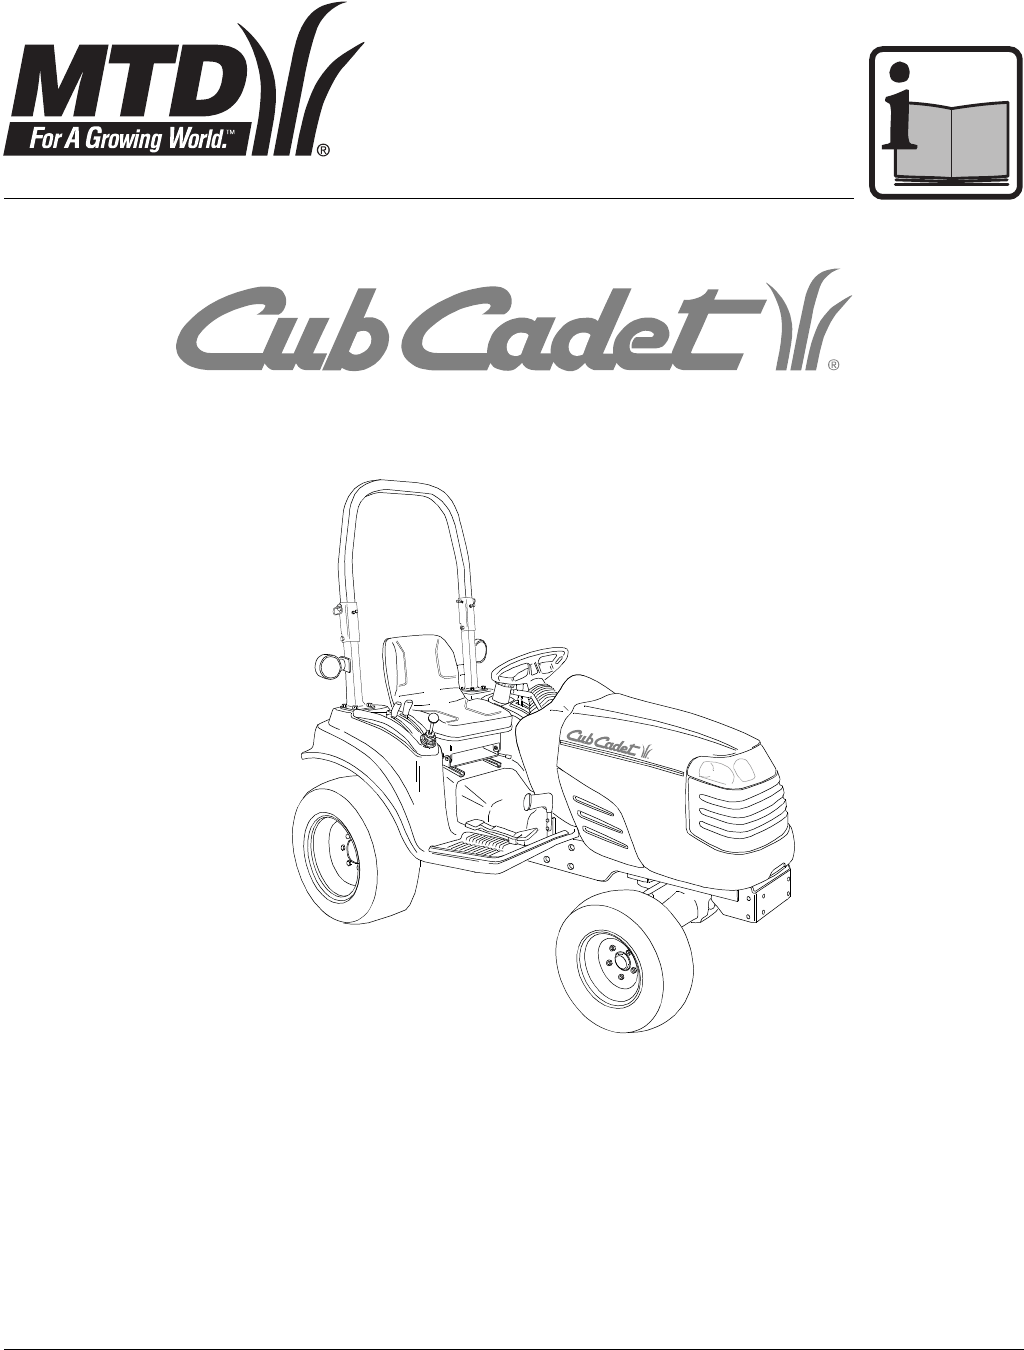 Cub Cadet Lawn Mower 7000 Series User Guide